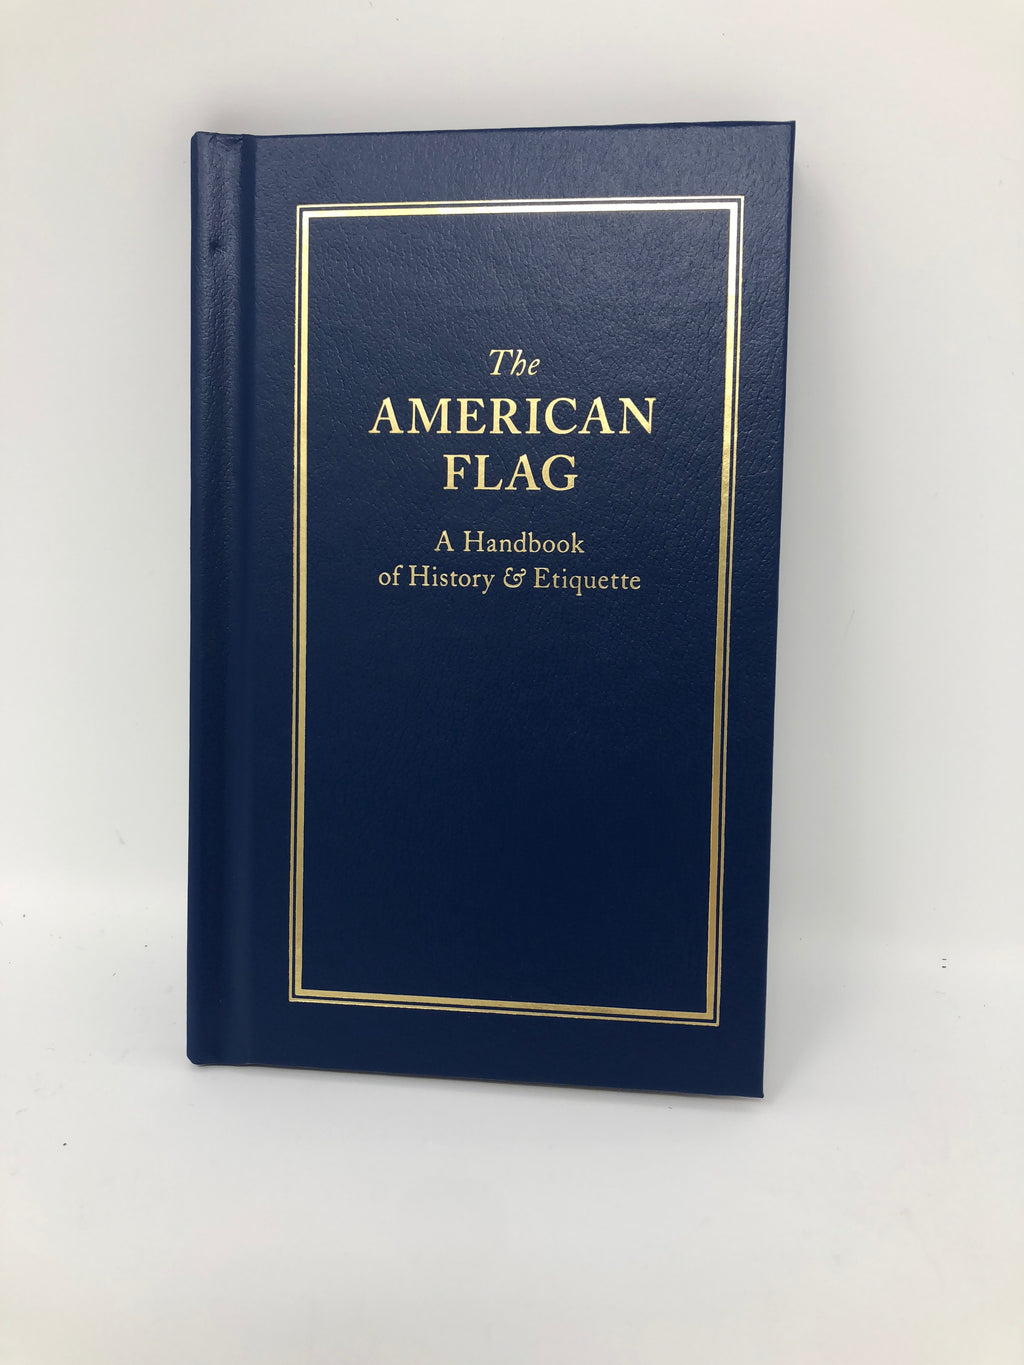 """The American Flag"" - A Handbook of History & Etiquette"